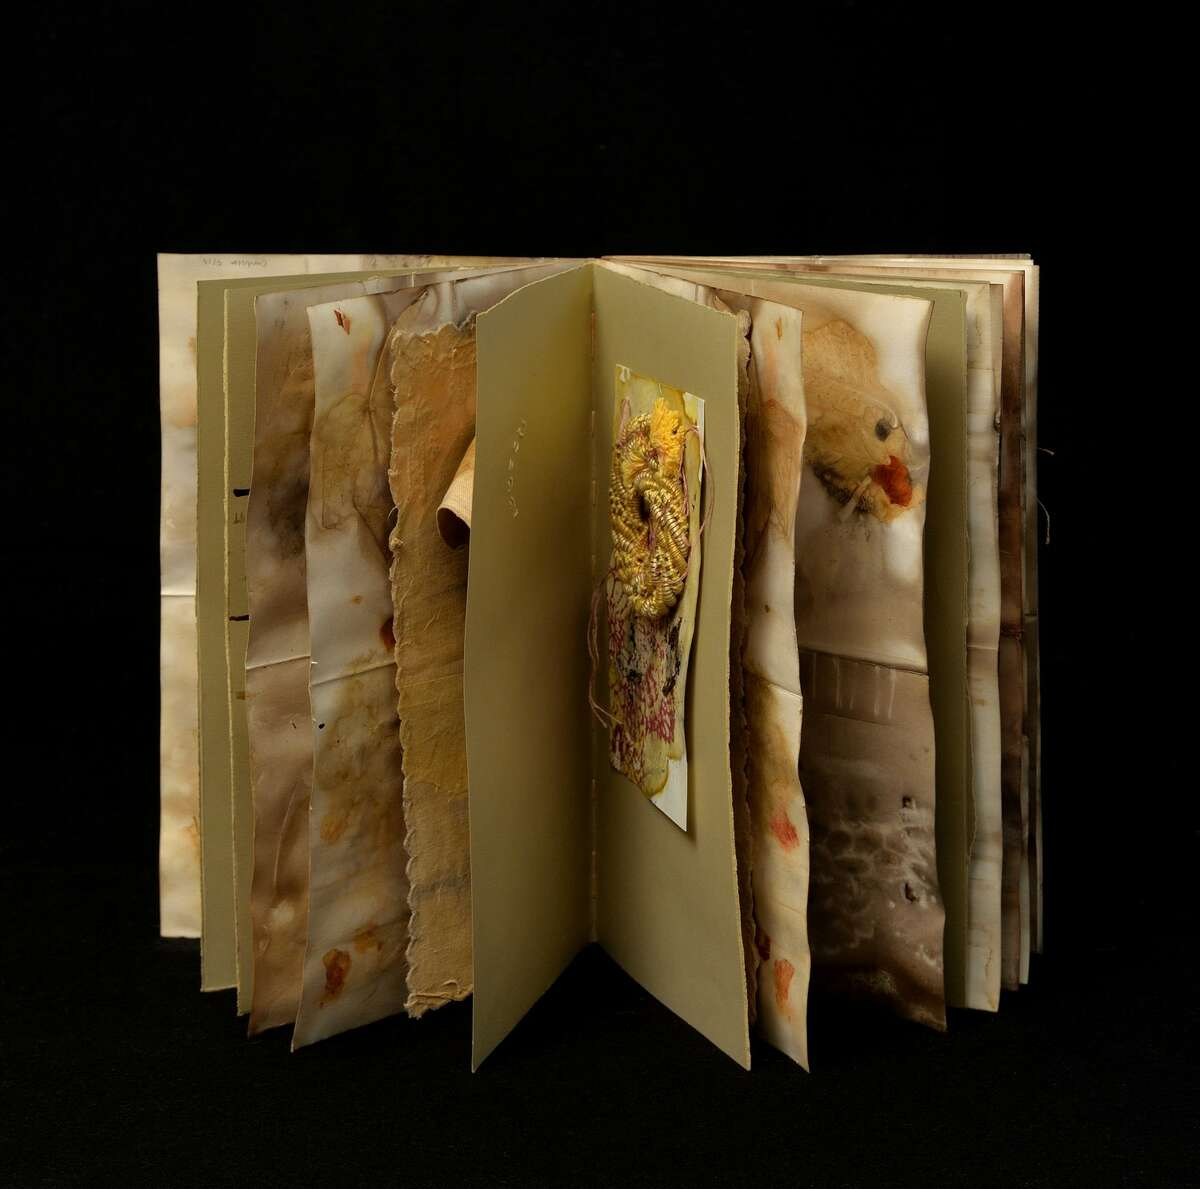 Traces of leaves and flowers transferred to the surfaces of cloth and paper. The prints are assembled to become pages in books, stitched upon and then together. images by Douglas Baz